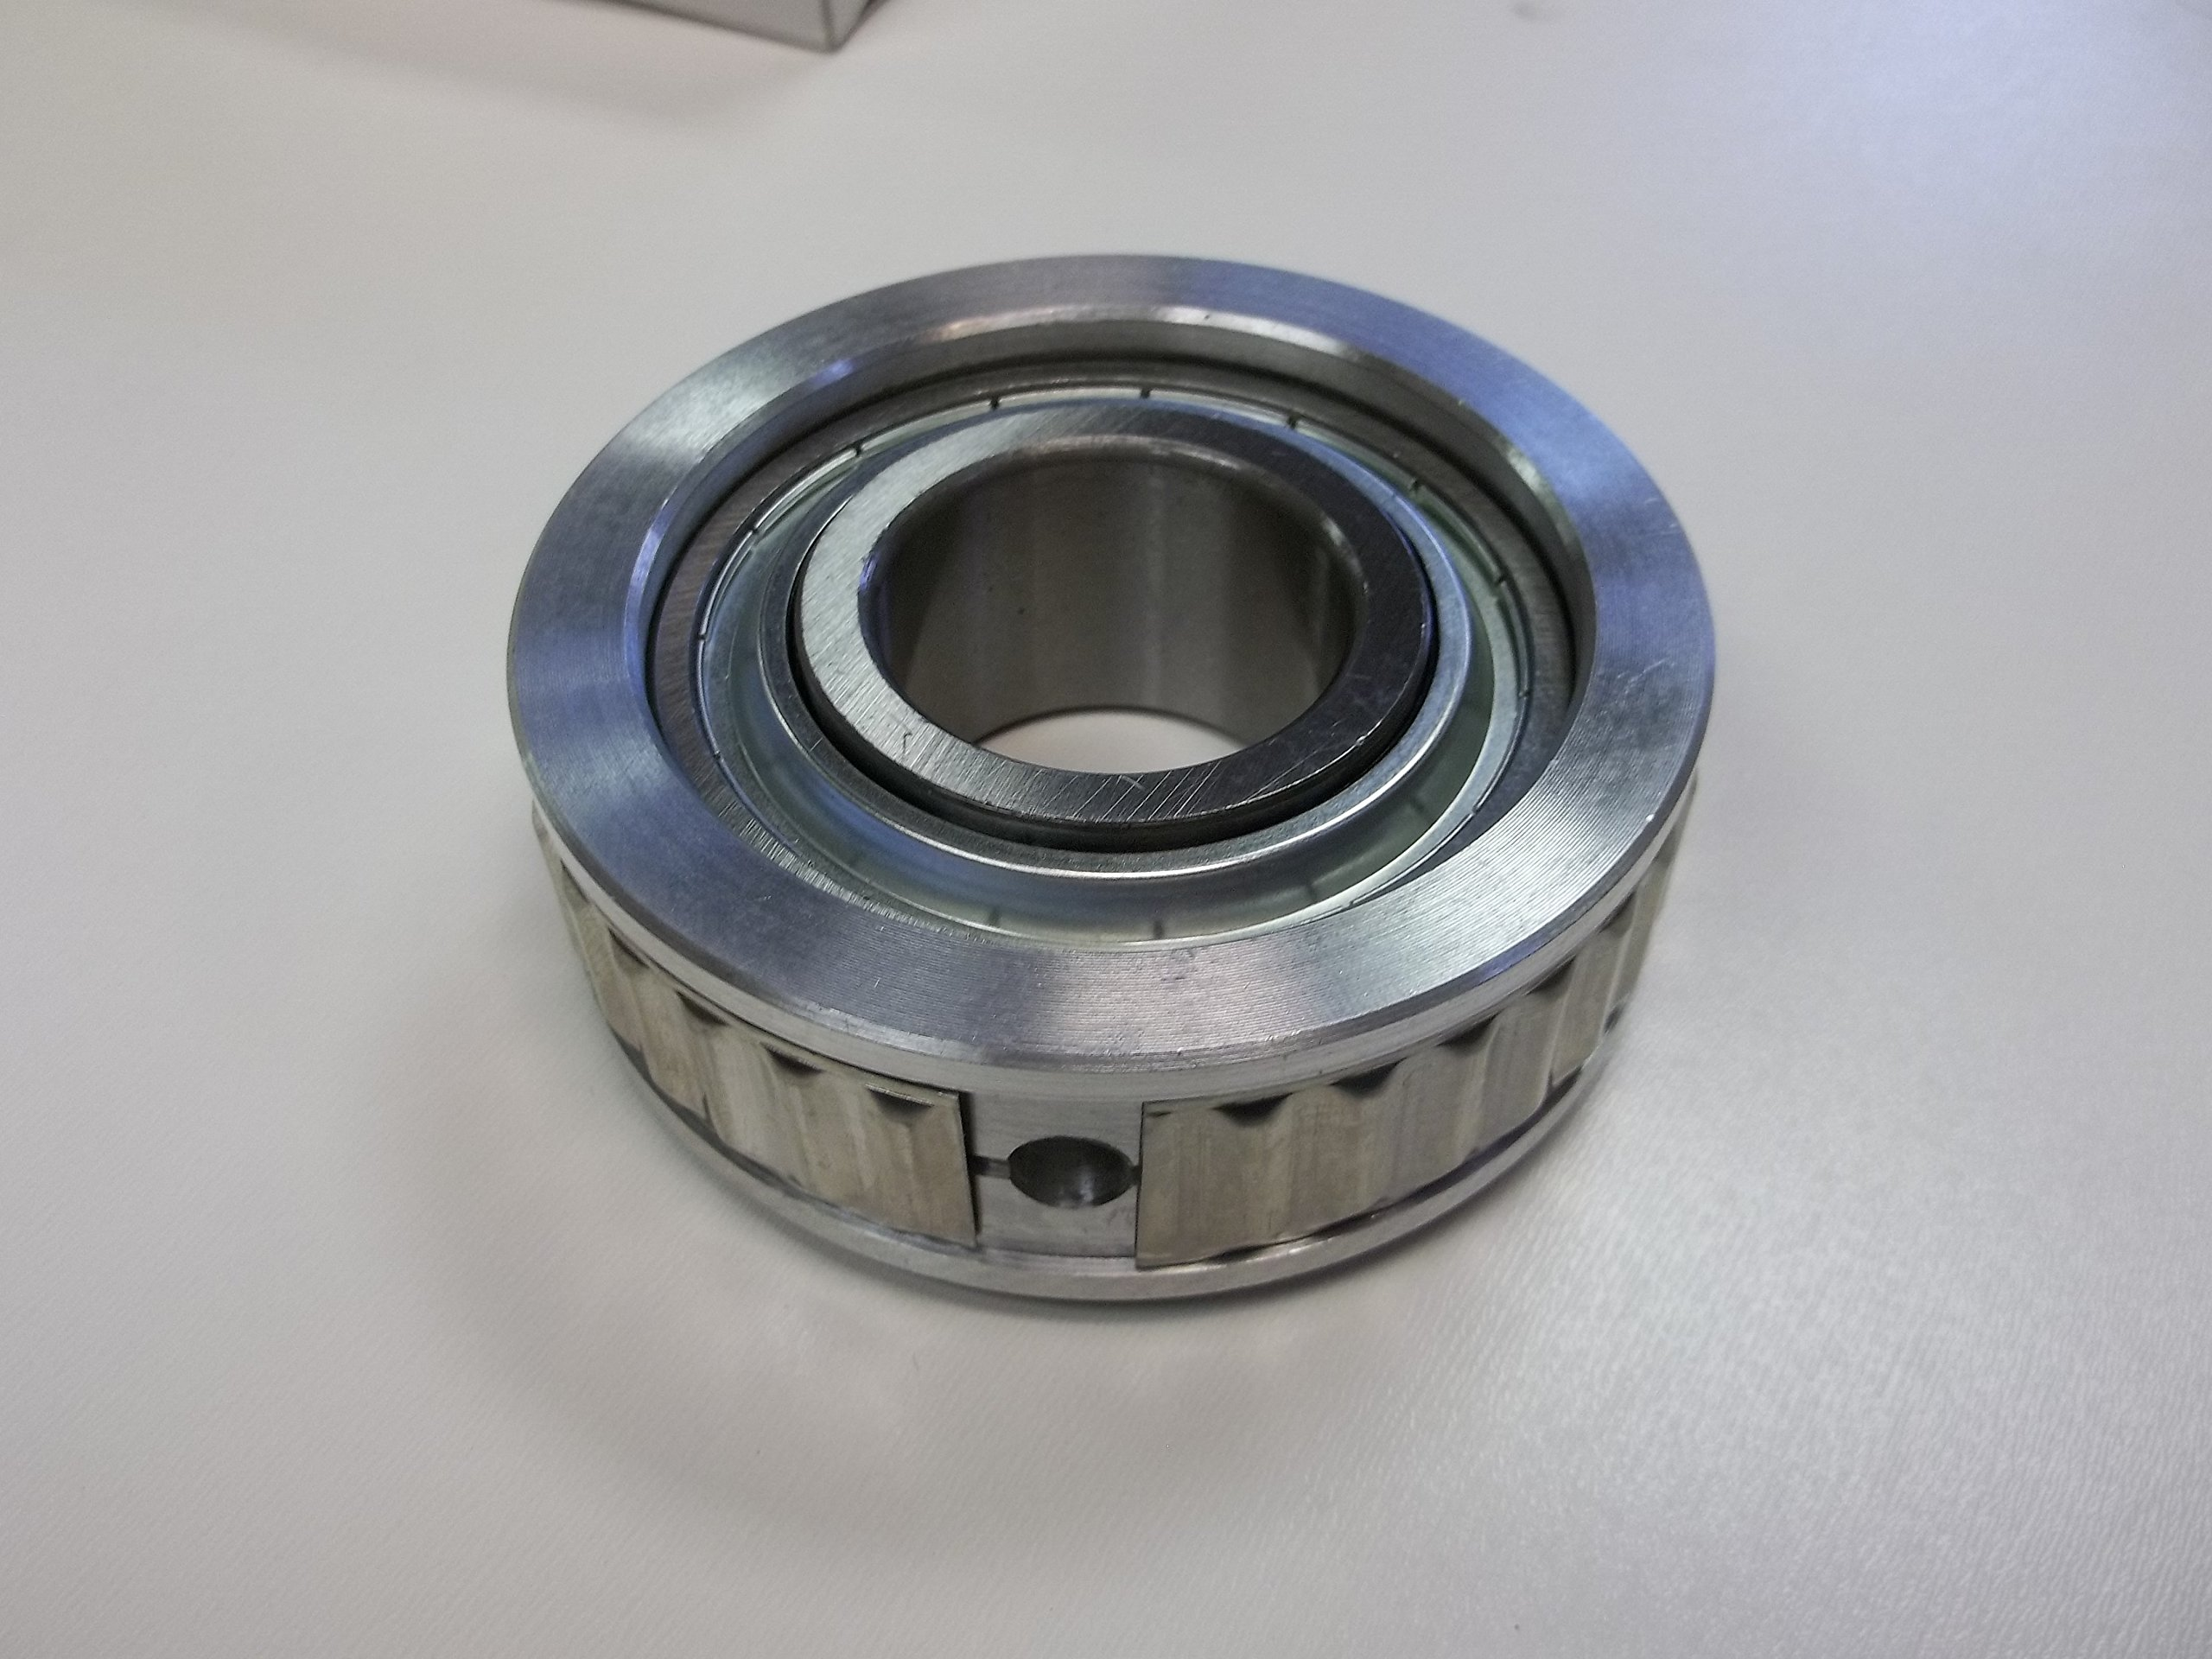 Replaces 3883257 DPS-A Gimble Bearing Seal for Volvo Penta SX-A Drive Shaft